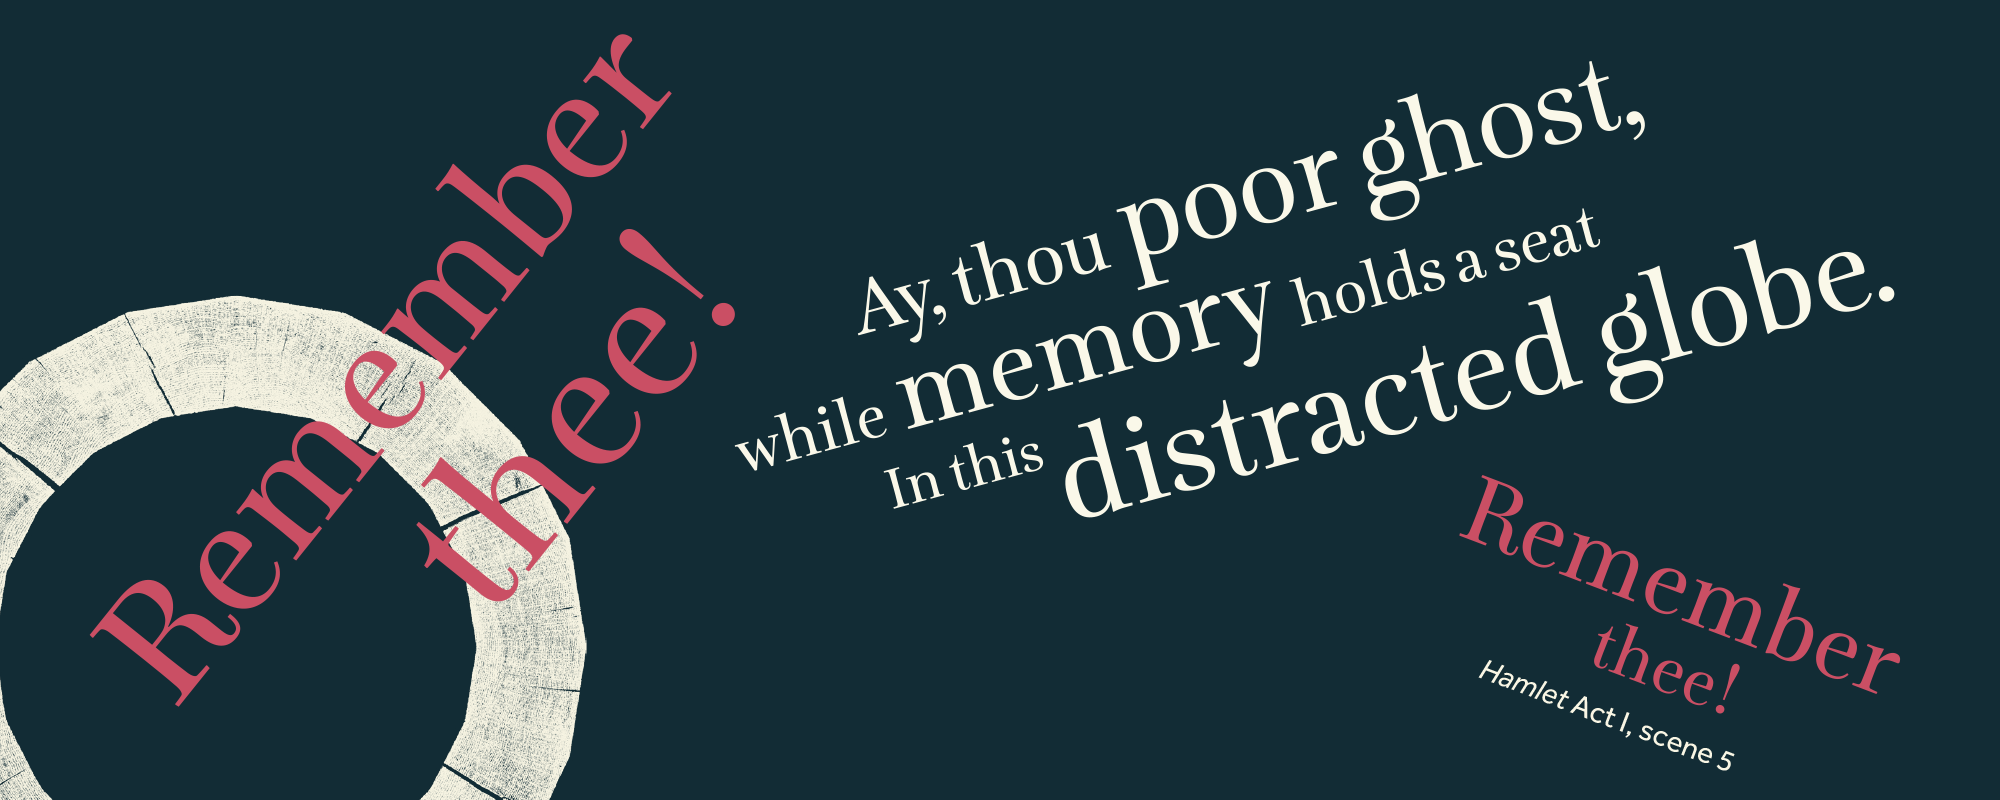 Text: Remember thee! Ay, thou poor ghost, while memory holds a seat In this distracted globe. Remember thee!